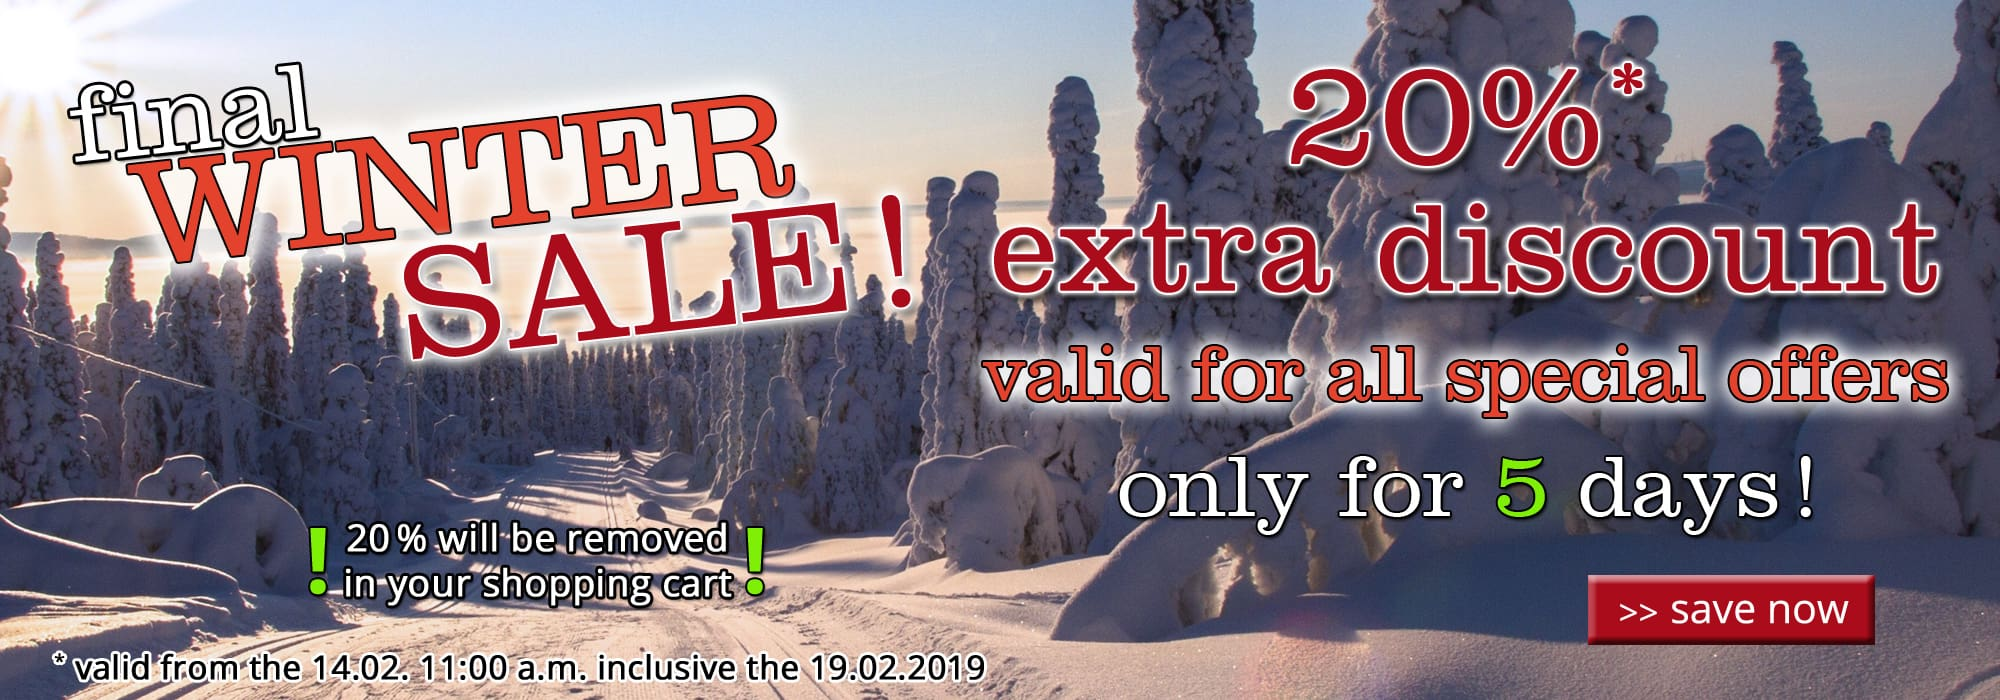 20% extra discount - valid for all special offers